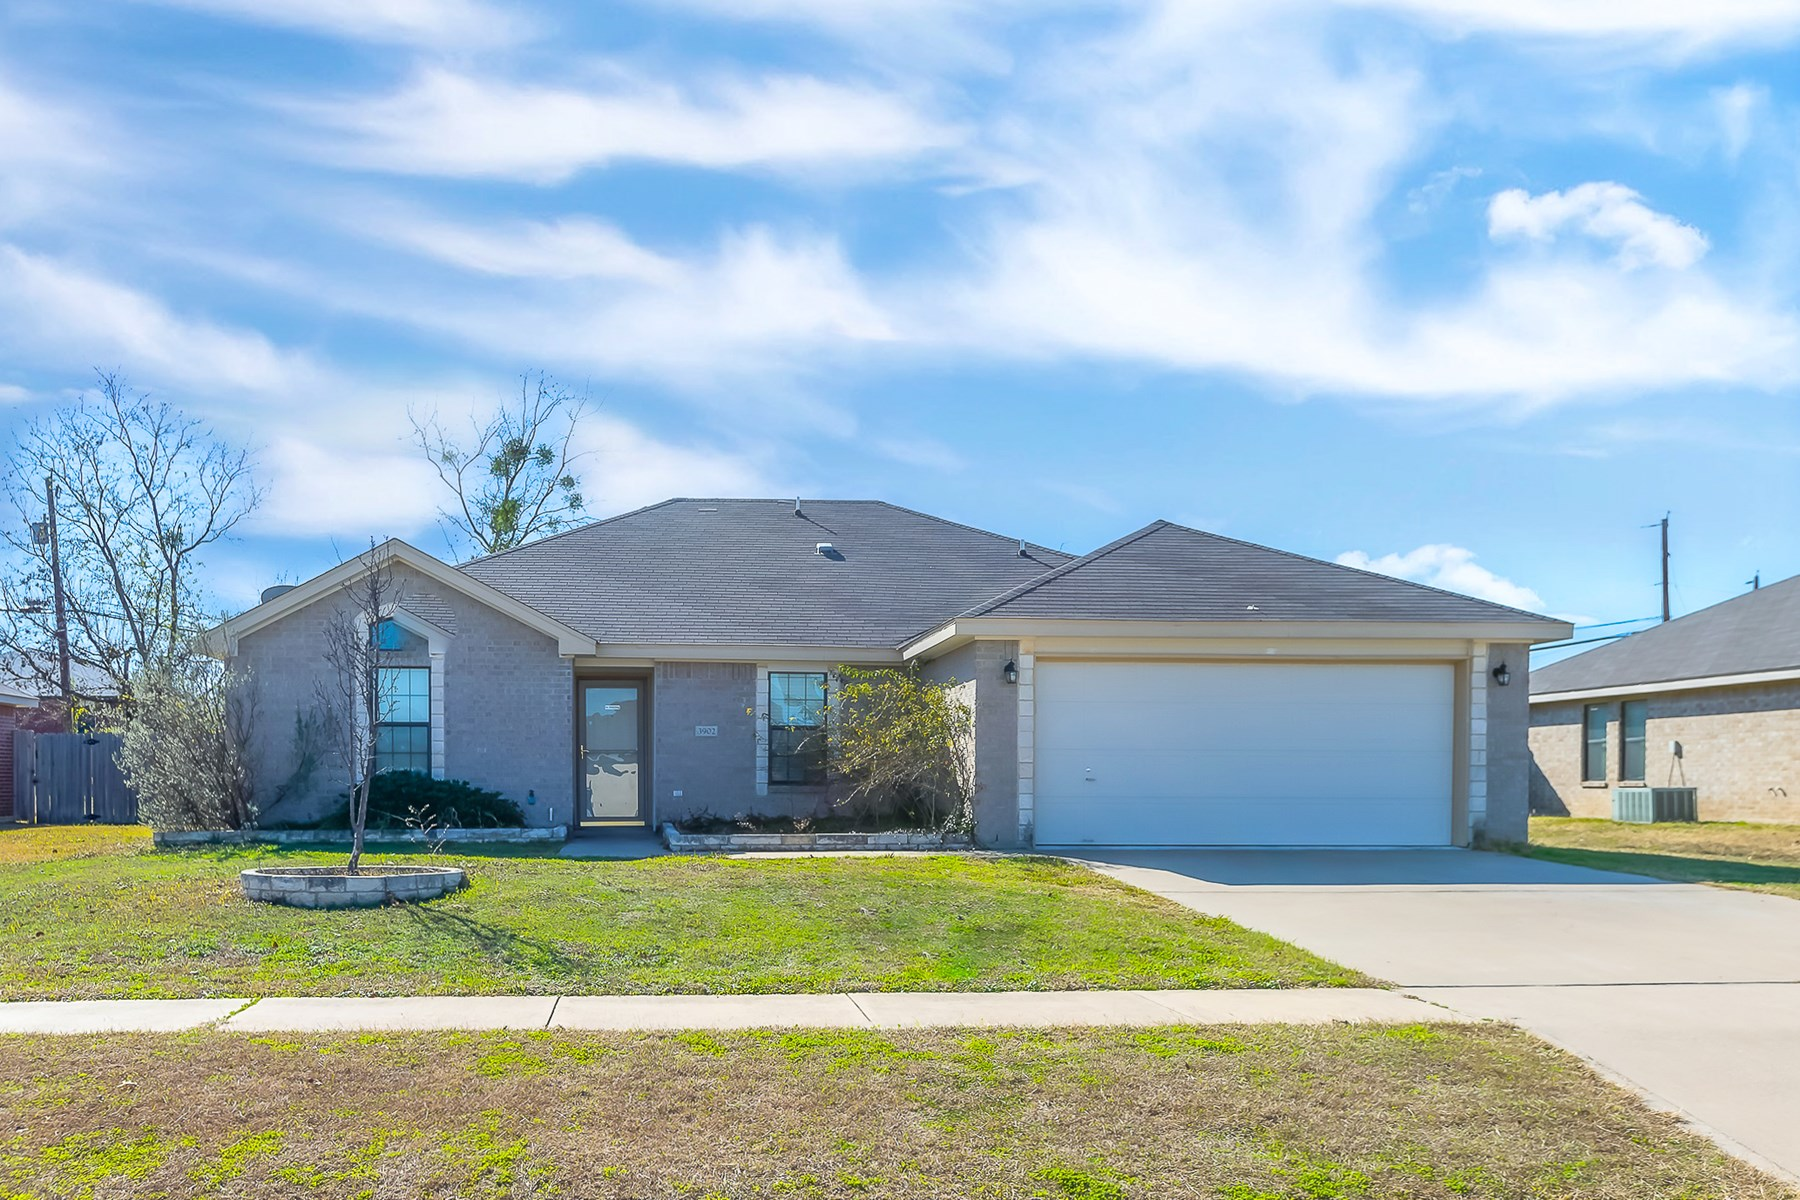 4 Bedroom 2 Bath For Sale South Killeen TX Sunflower Estates